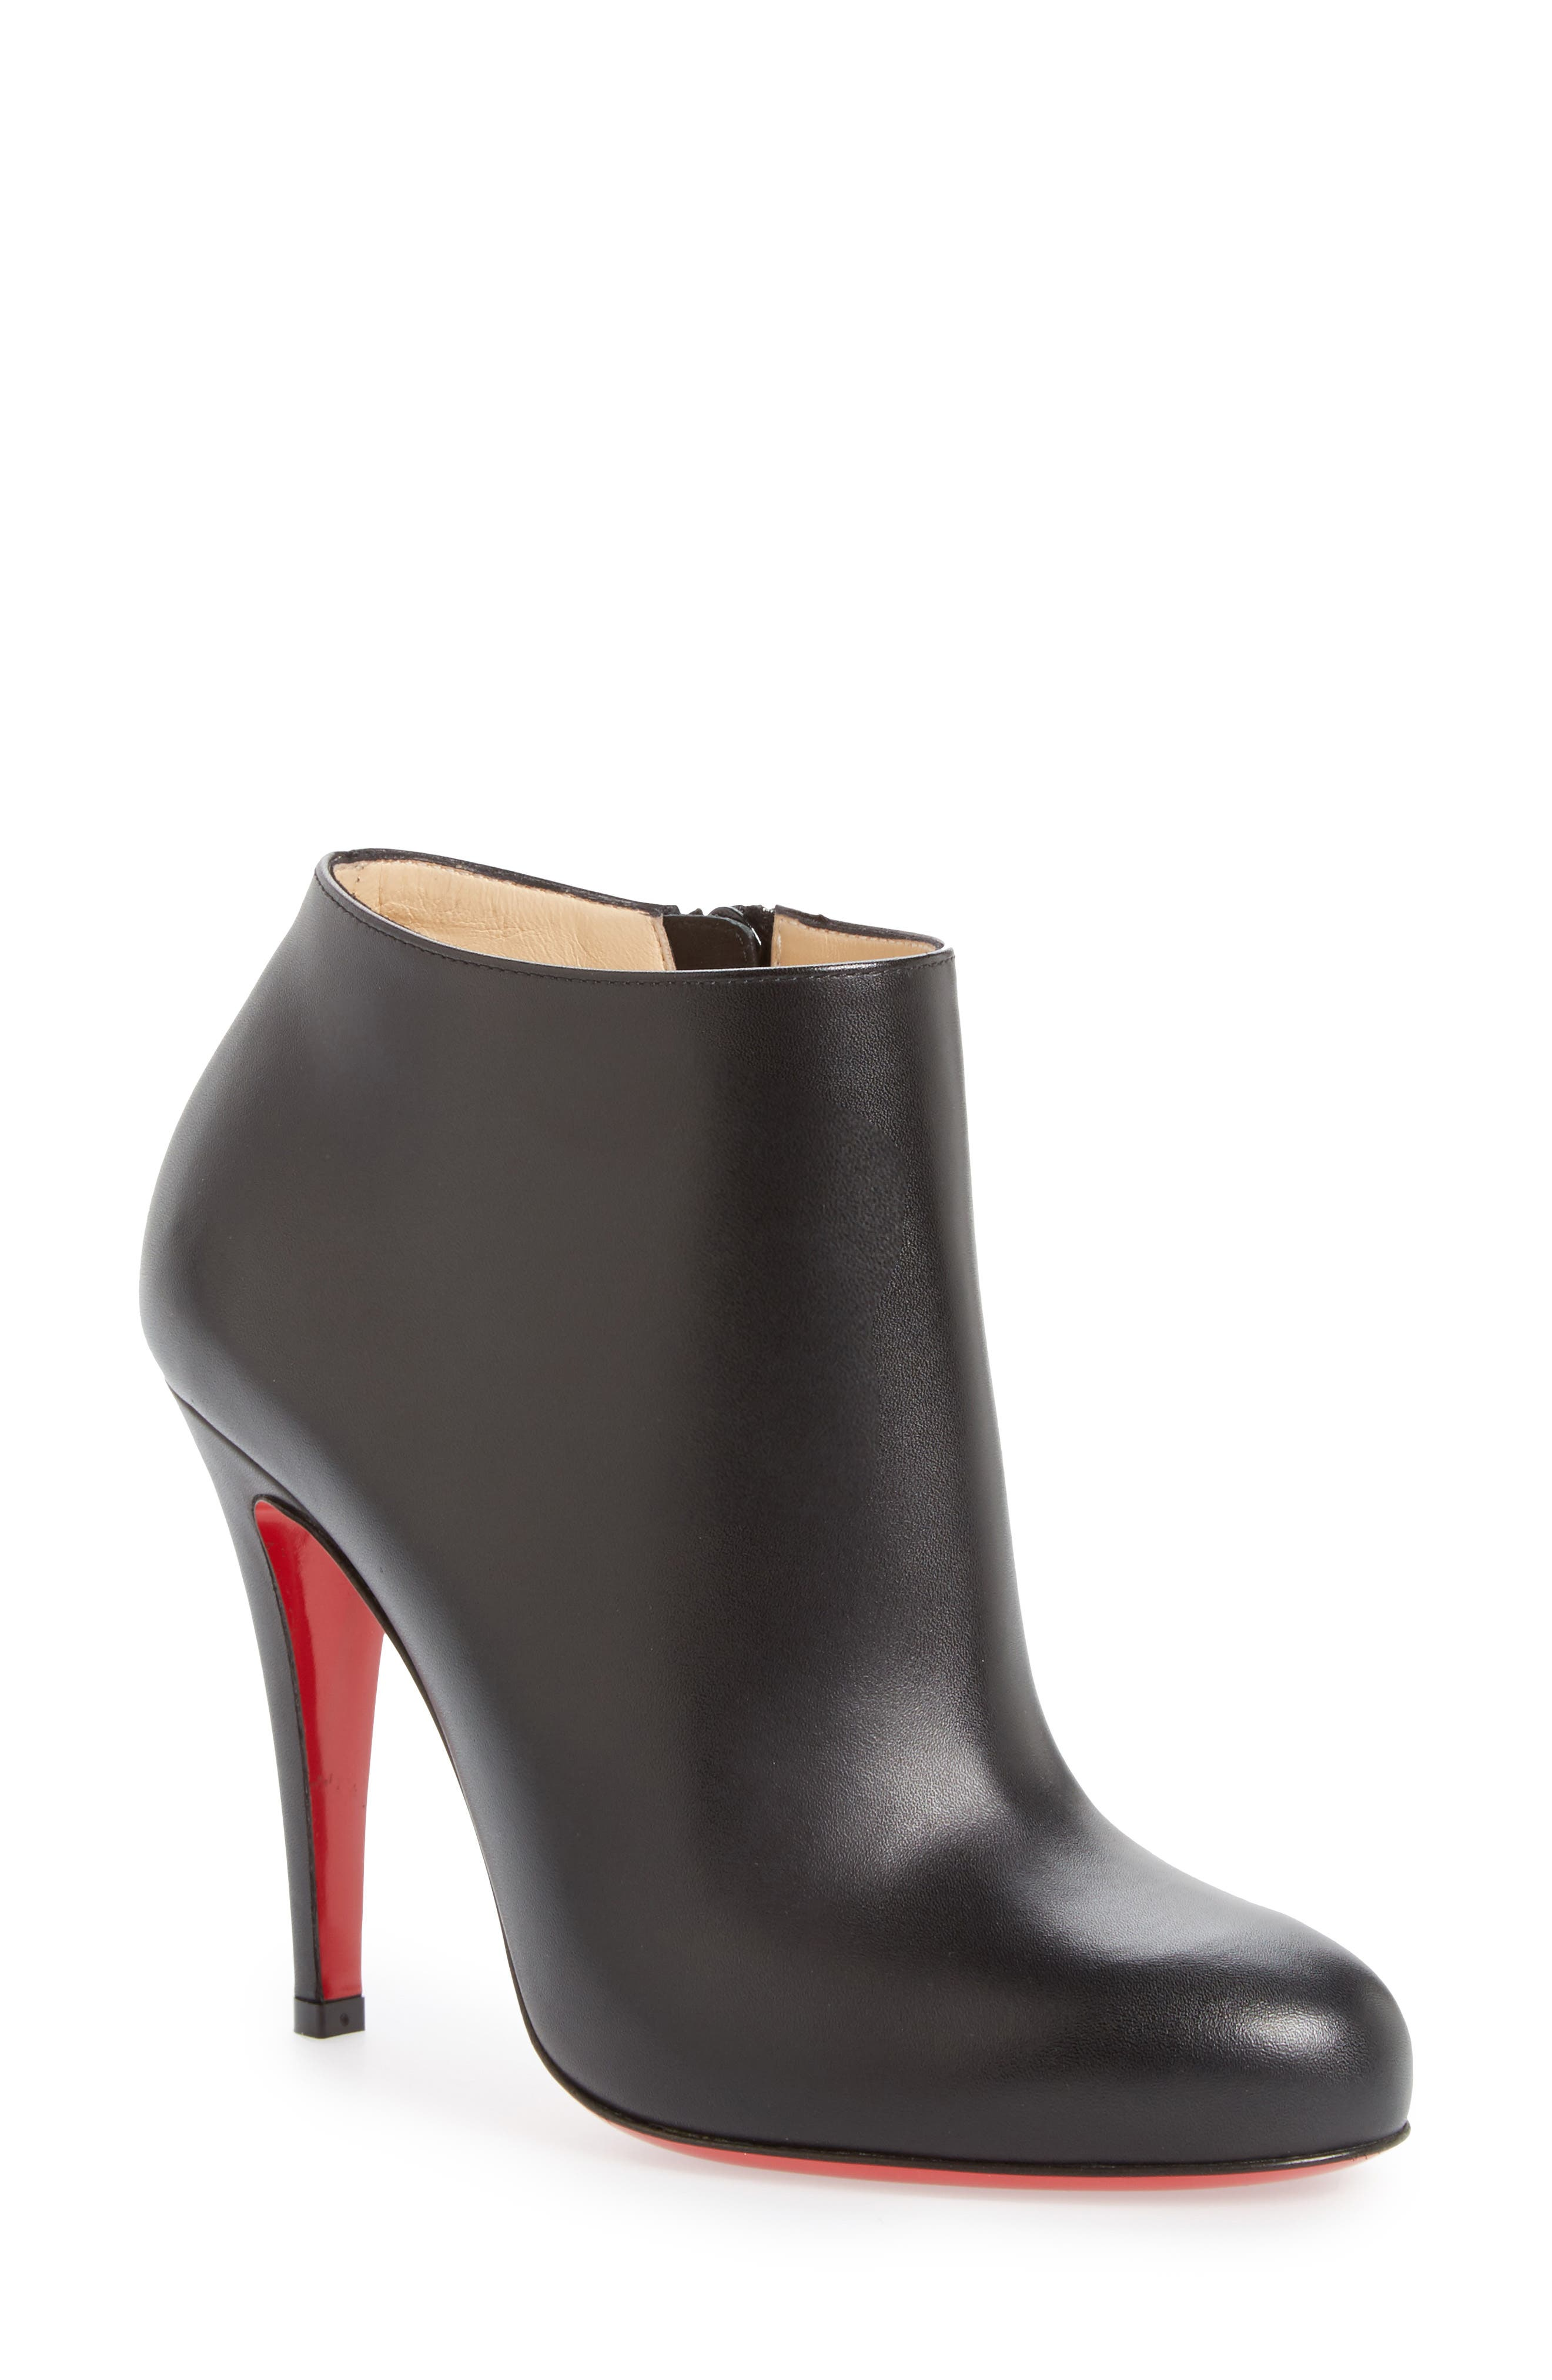 Alternate Image 1 Selected - Christian Louboutin Belle Round Toe Bootie